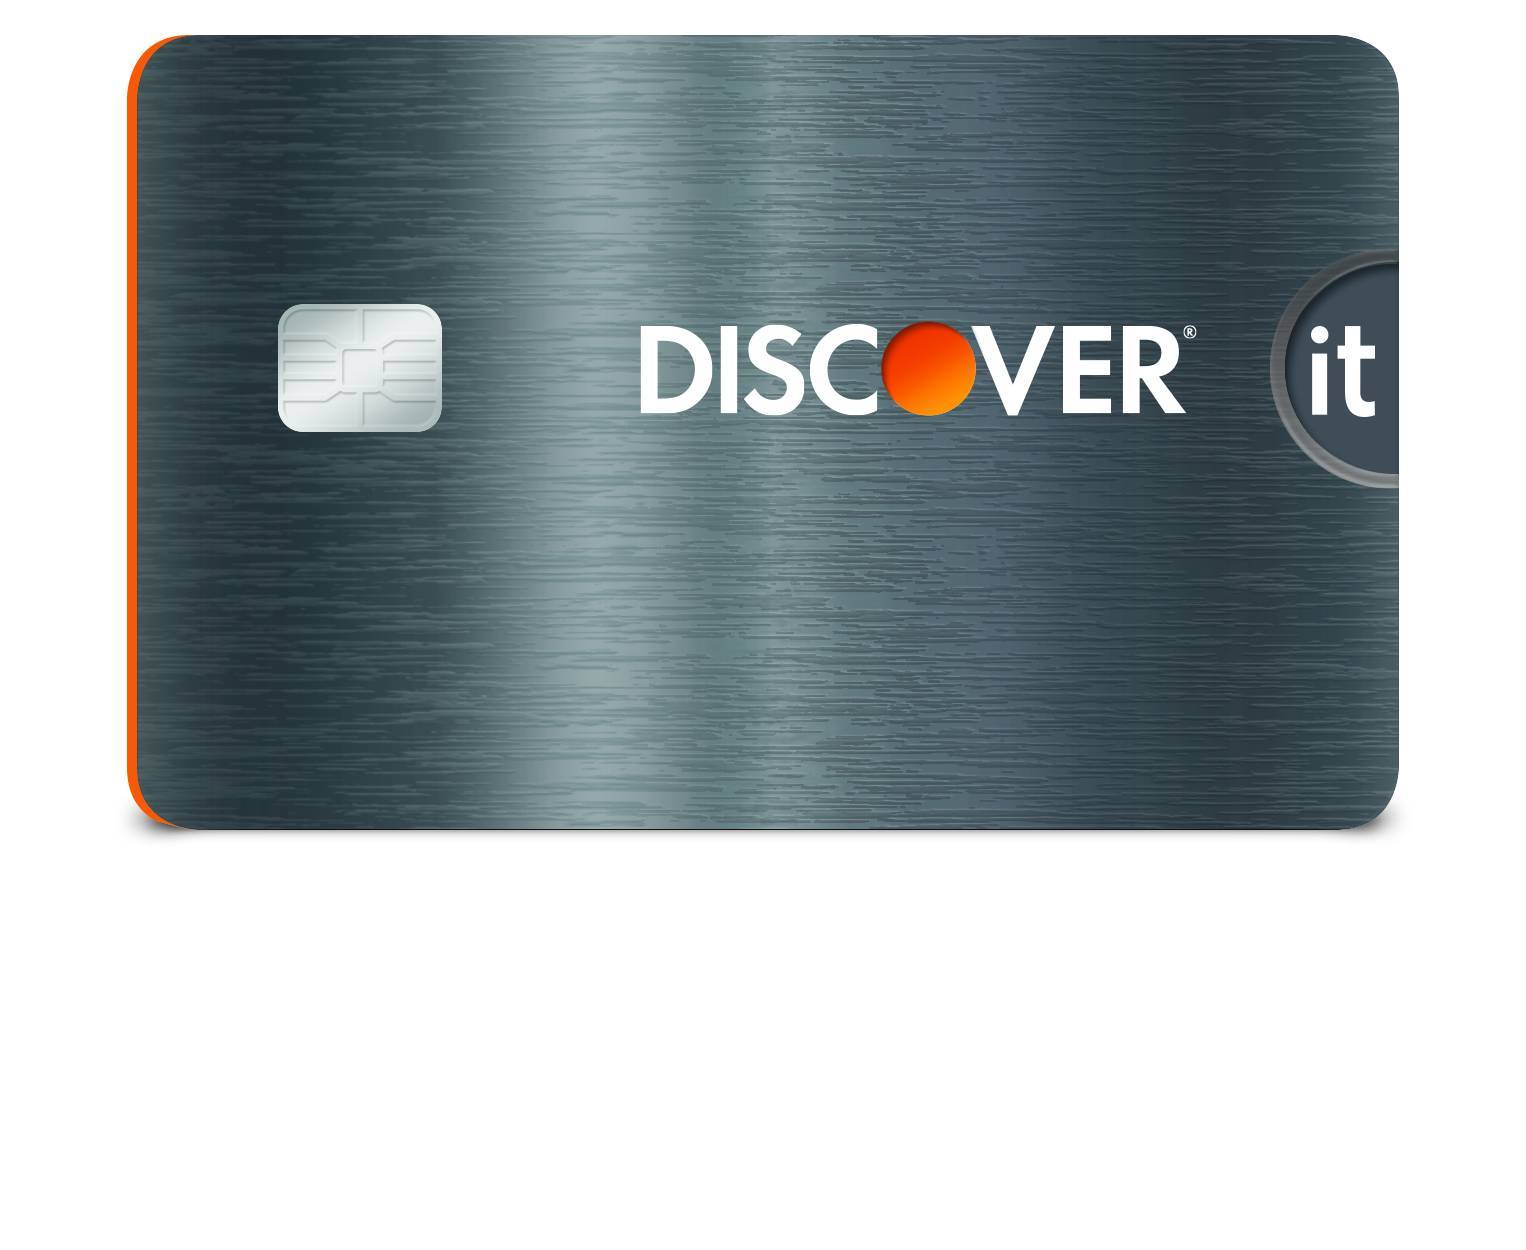 Discover it secured credit card helps consumers build or rebuild discover it secured credit card helps consumers build or rebuild their credit with responsible use business wire magicingreecefo Choice Image